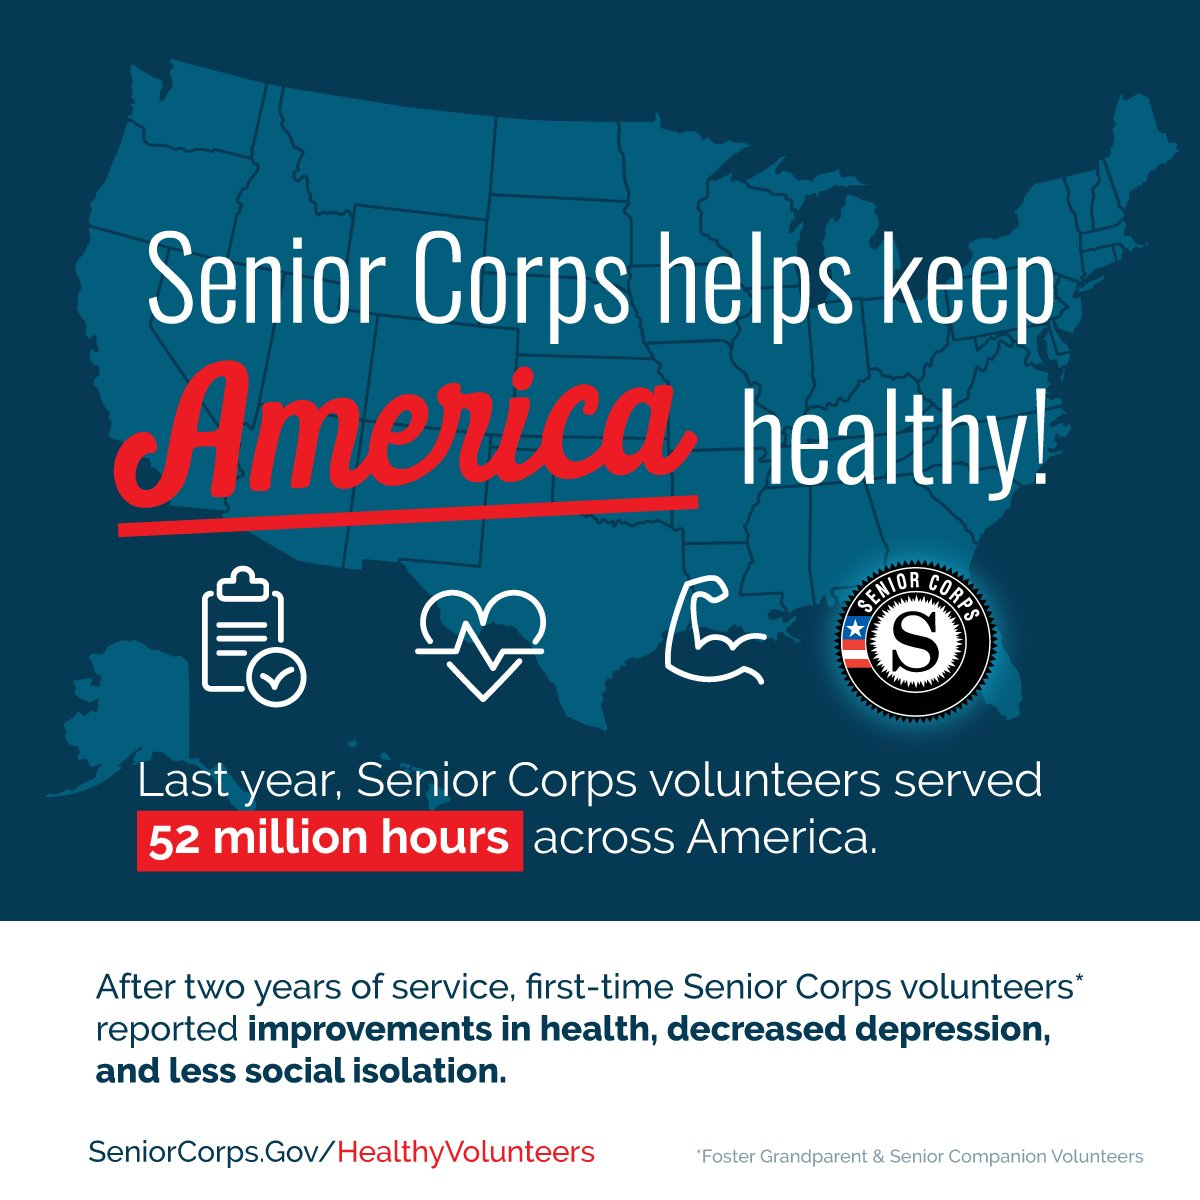 Great news! Older Americans who volunteer with @SeniorCorps report living happier and healthier lives, in addition to making a difference in their communities. Visit http://seniorcorps.gov/healthyvolunteers… to learn more about the new report. #SeniorCorpsWorks #HealthyVolunteers